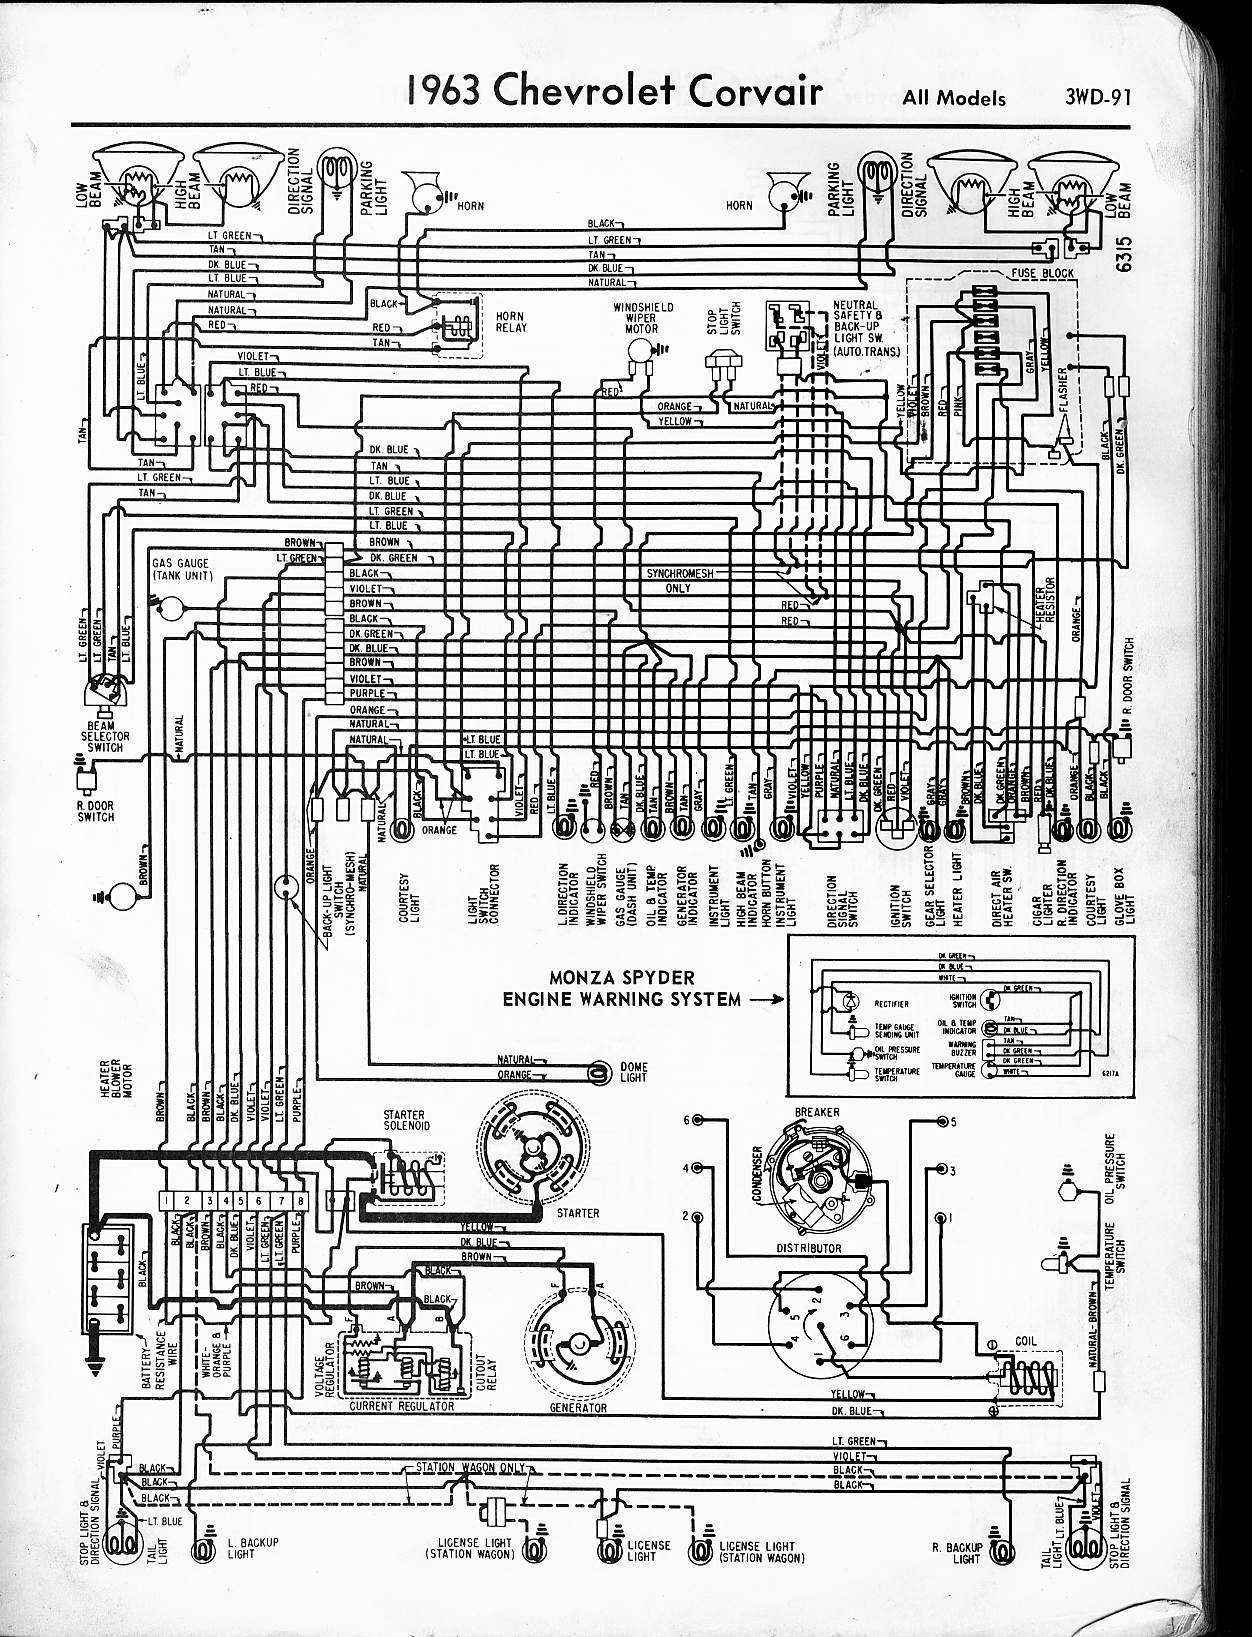 Groovy 1976 Caprice Wiring Diagram Wiring Diagram Data Schema Wiring Database Xlexigelartorg